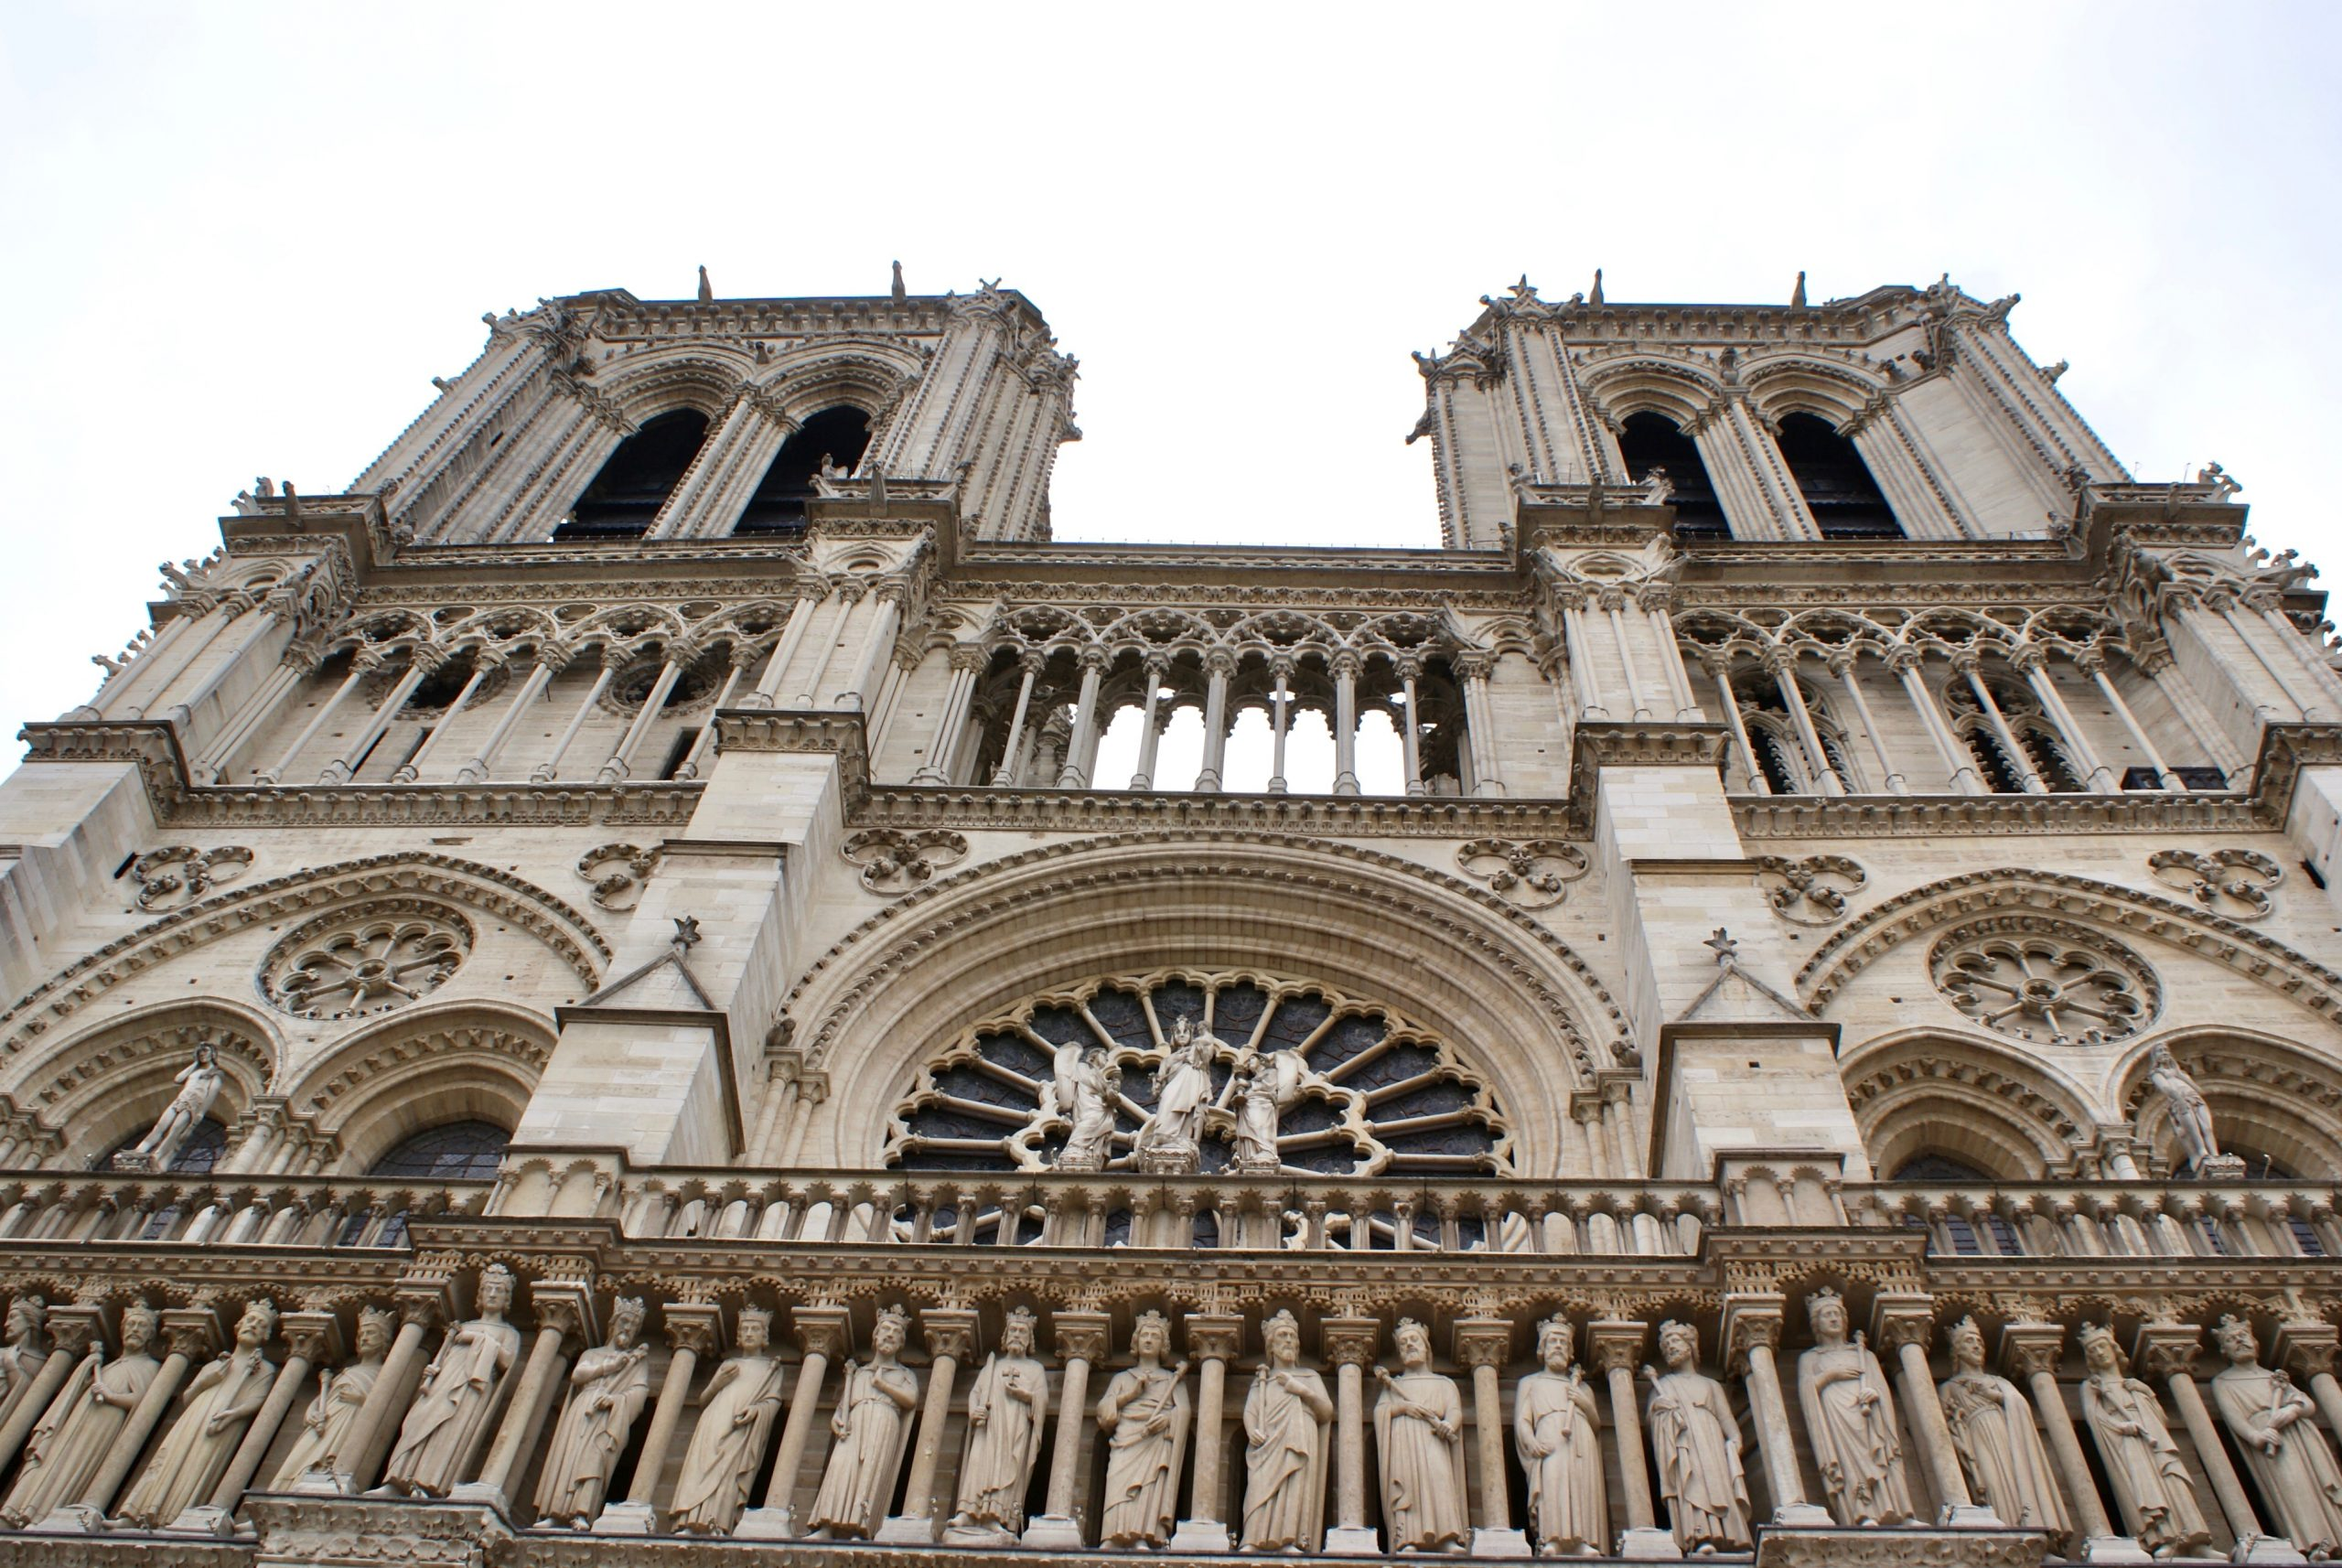 front facade of Notre Dame Cathedral with twin spires and architectural detail